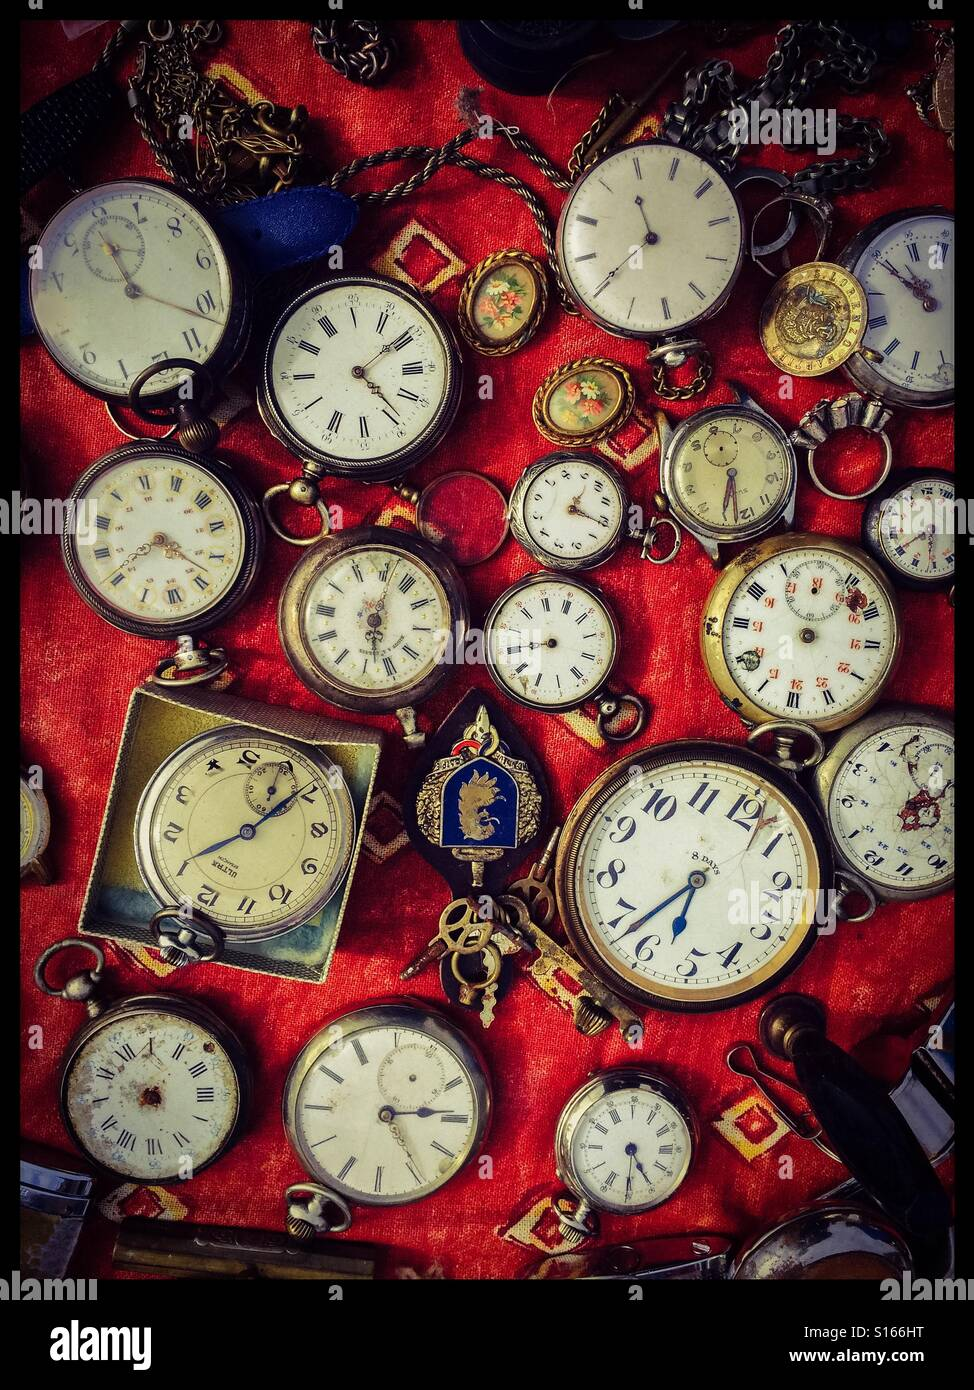 Pocket watches - Stock Image